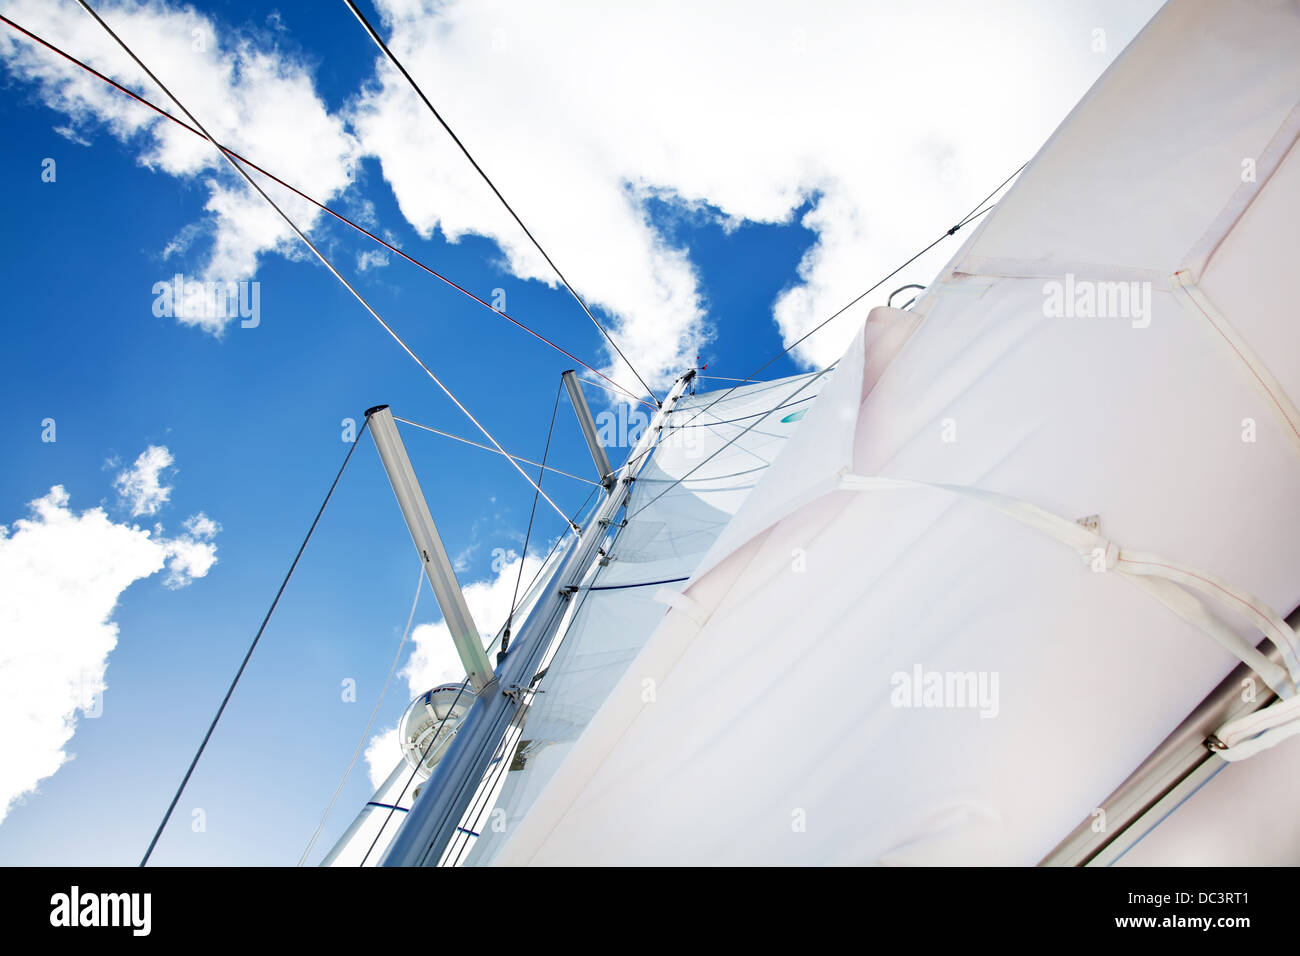 Sail of a sailing boat over bright bue sky - Stock Image